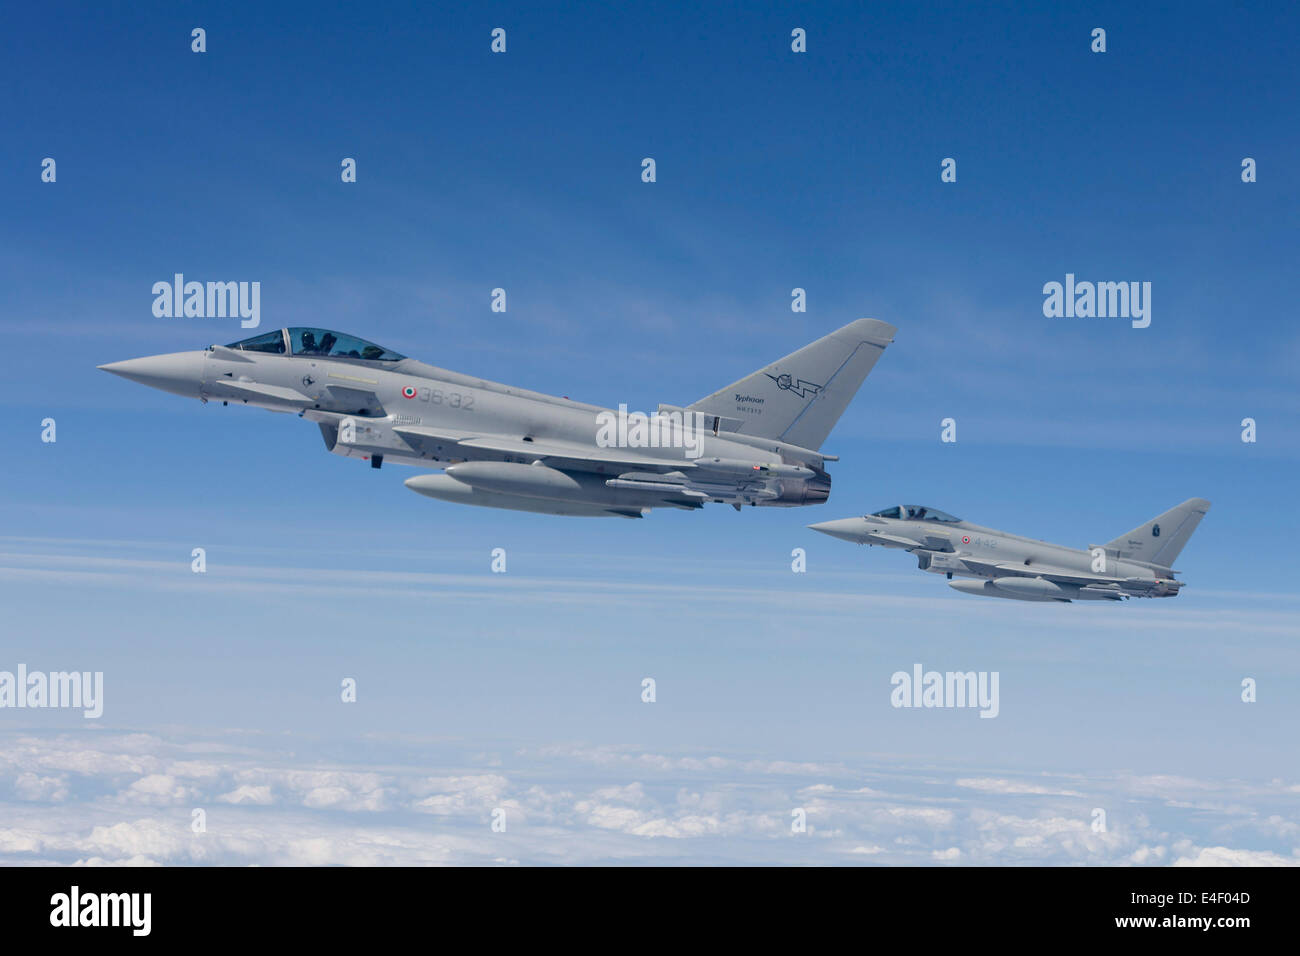 Italian Air Force Eurofighter Typhoon jets of 36th Stormo during NATO exercise JAWTEX 2014. - Stock Image